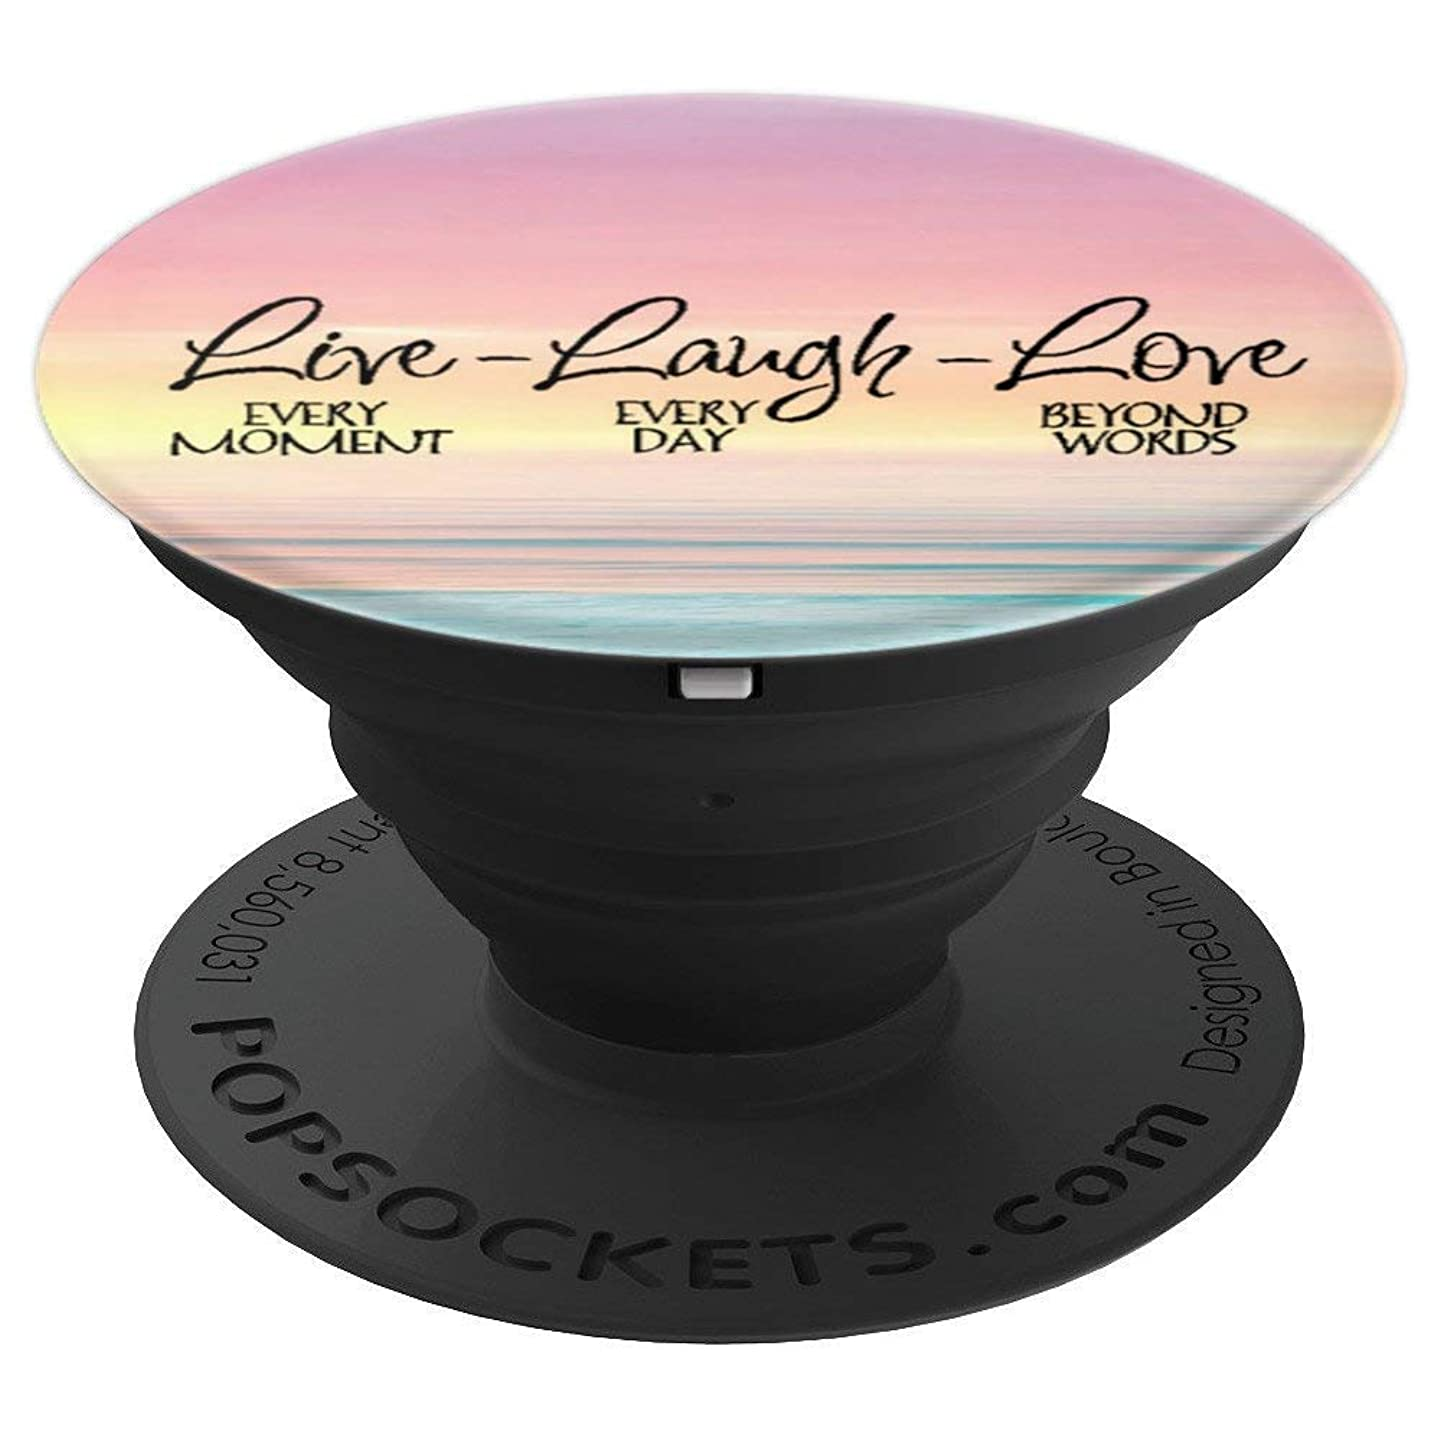 Live Laugh Love Pop Socket Phone Mount Holder - PopSockets Grip and Stand for Phones and Tablets